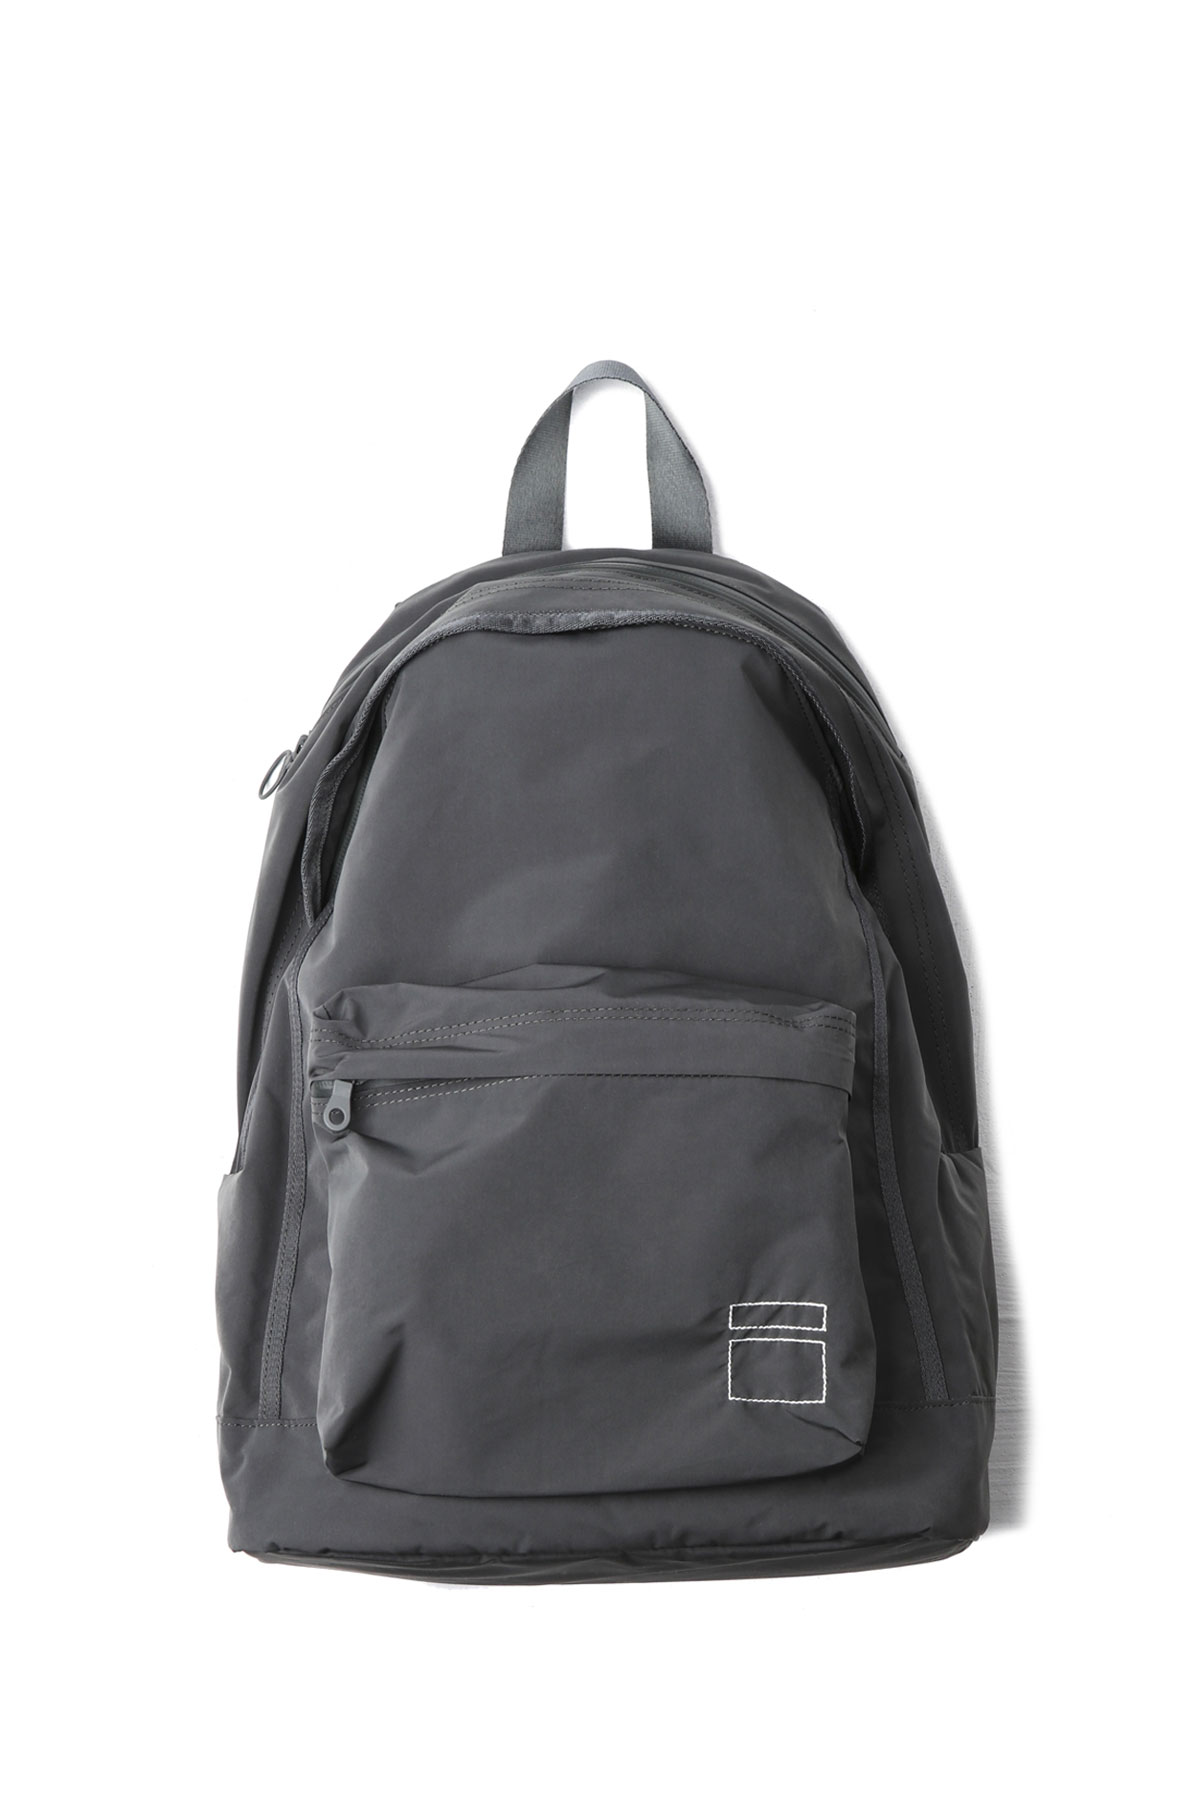 Blankof : BLG 01 23L Day Pack (O.Grey)